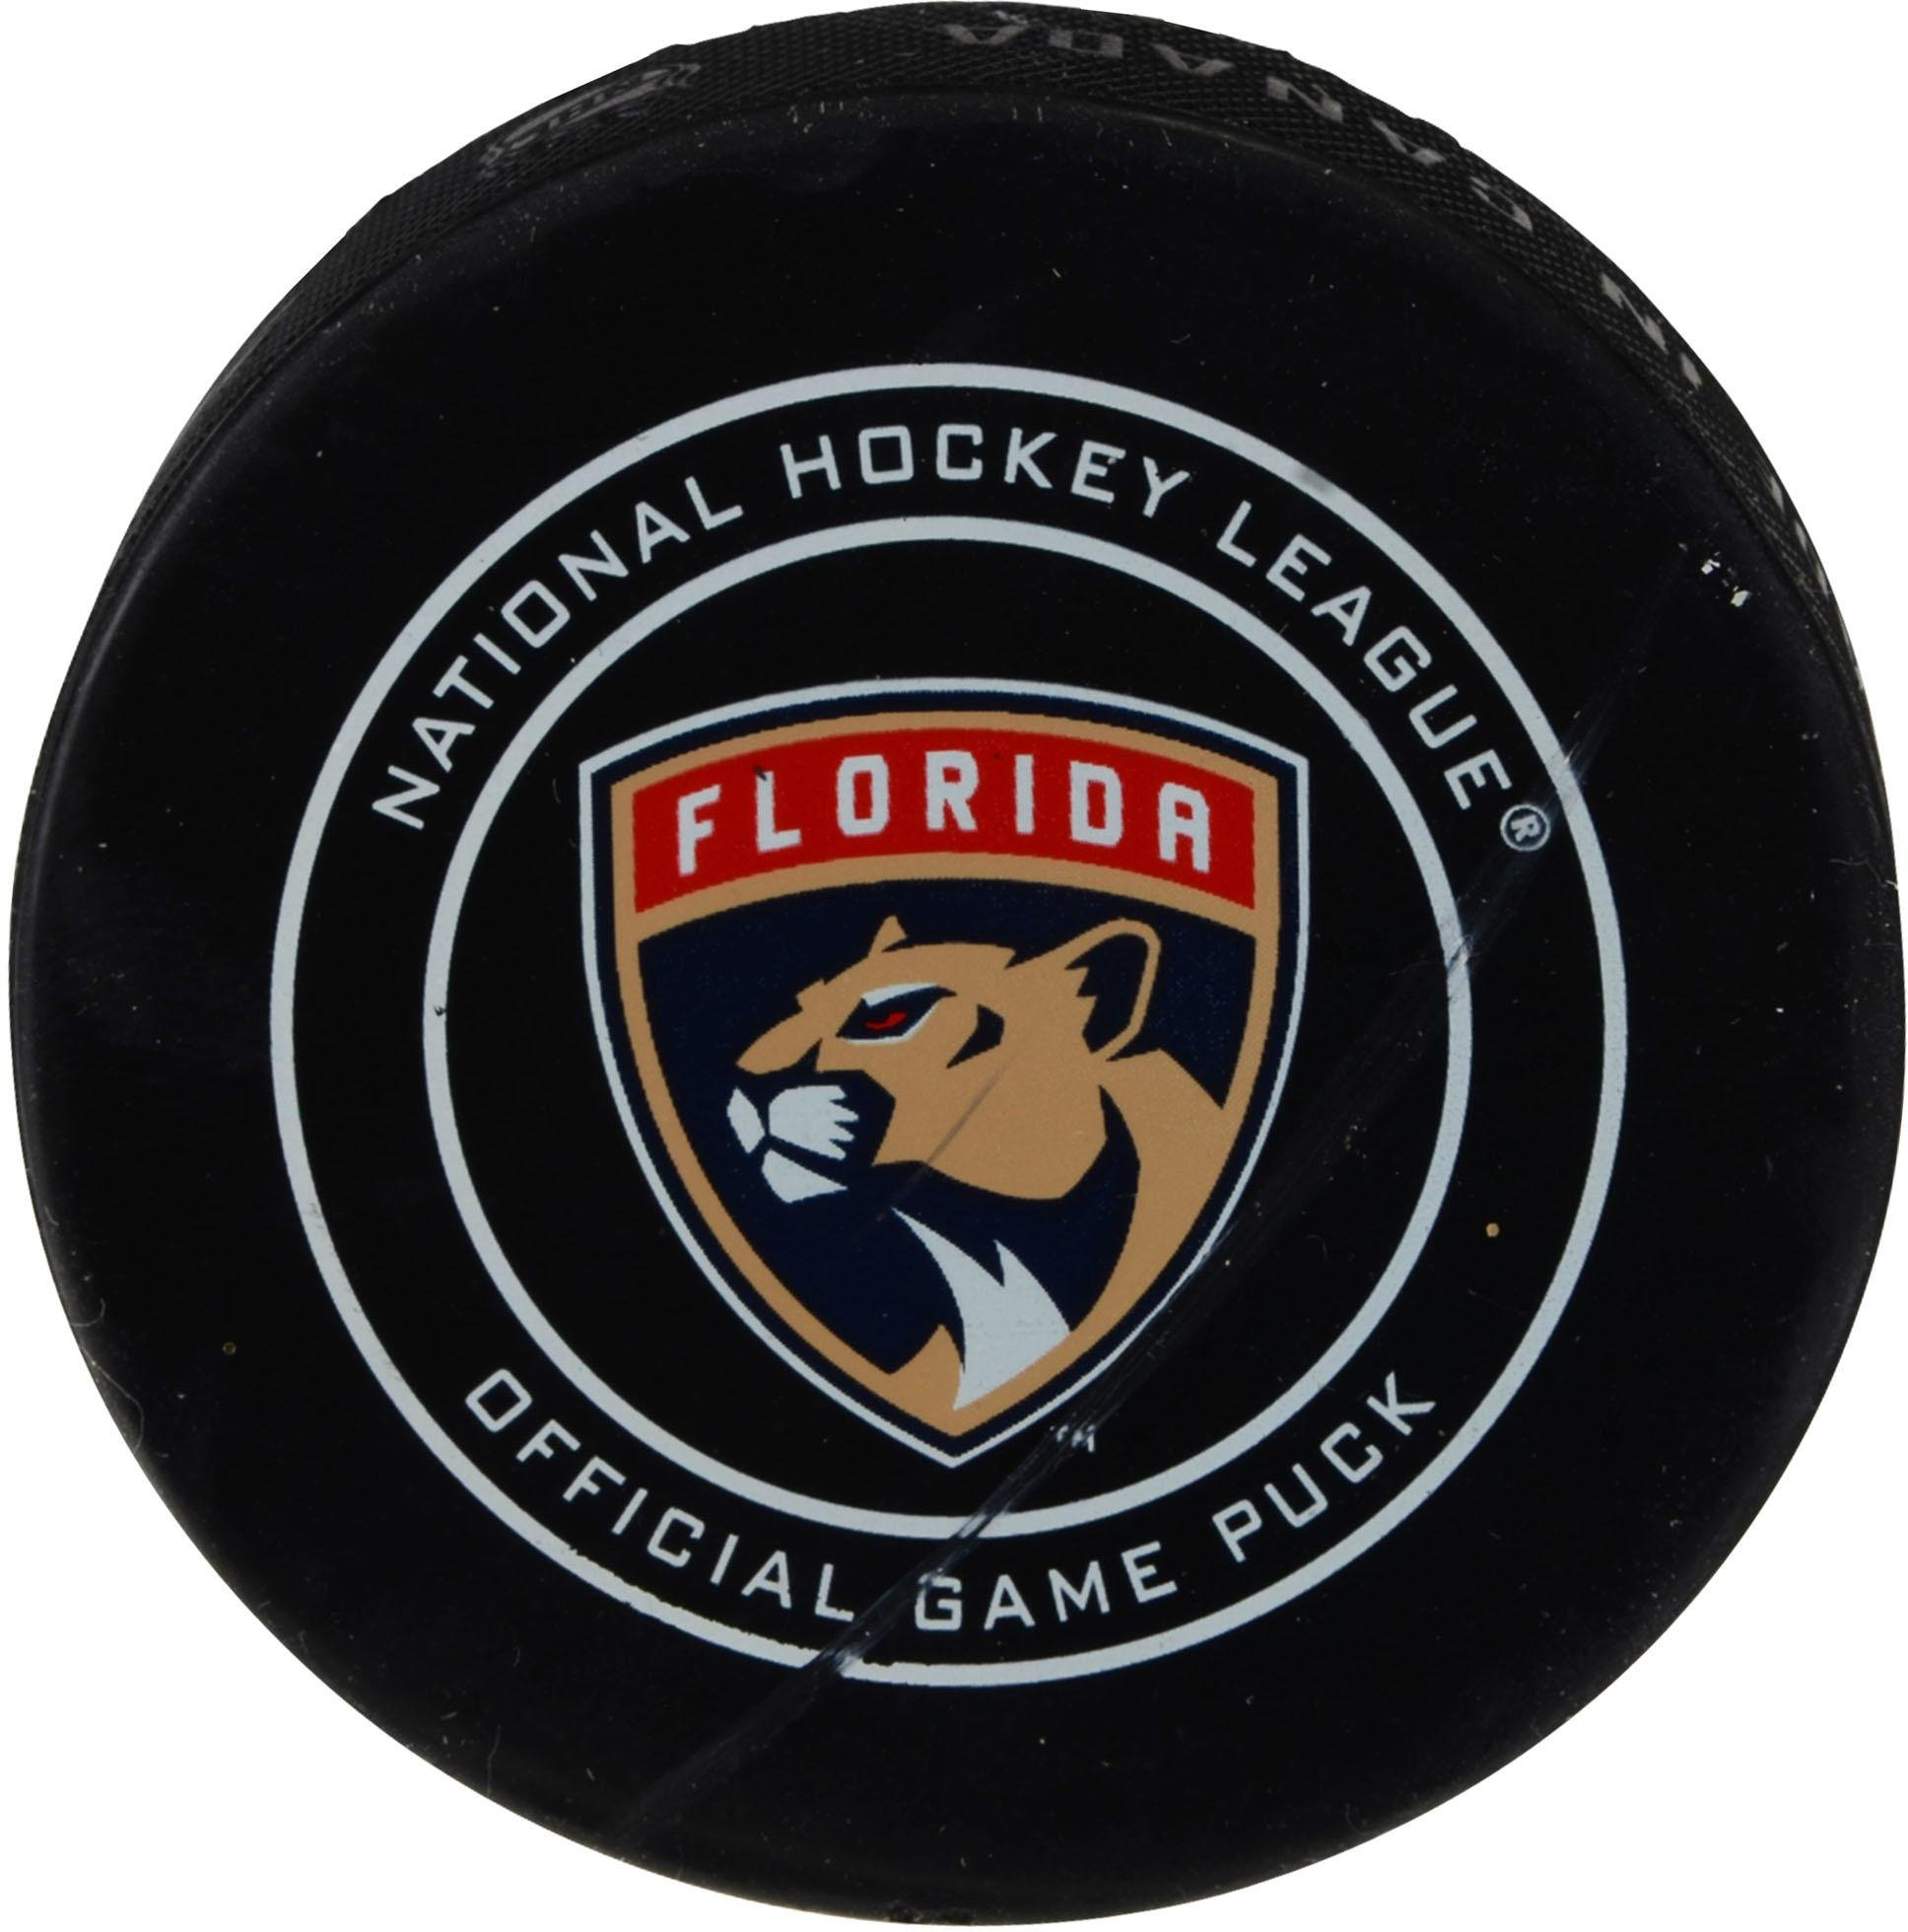 Florida Panthers Game Used Puck vs. Boston Bruins on April 5, 2018 Fanatics Authentic Certified Game Used NHL Pucks